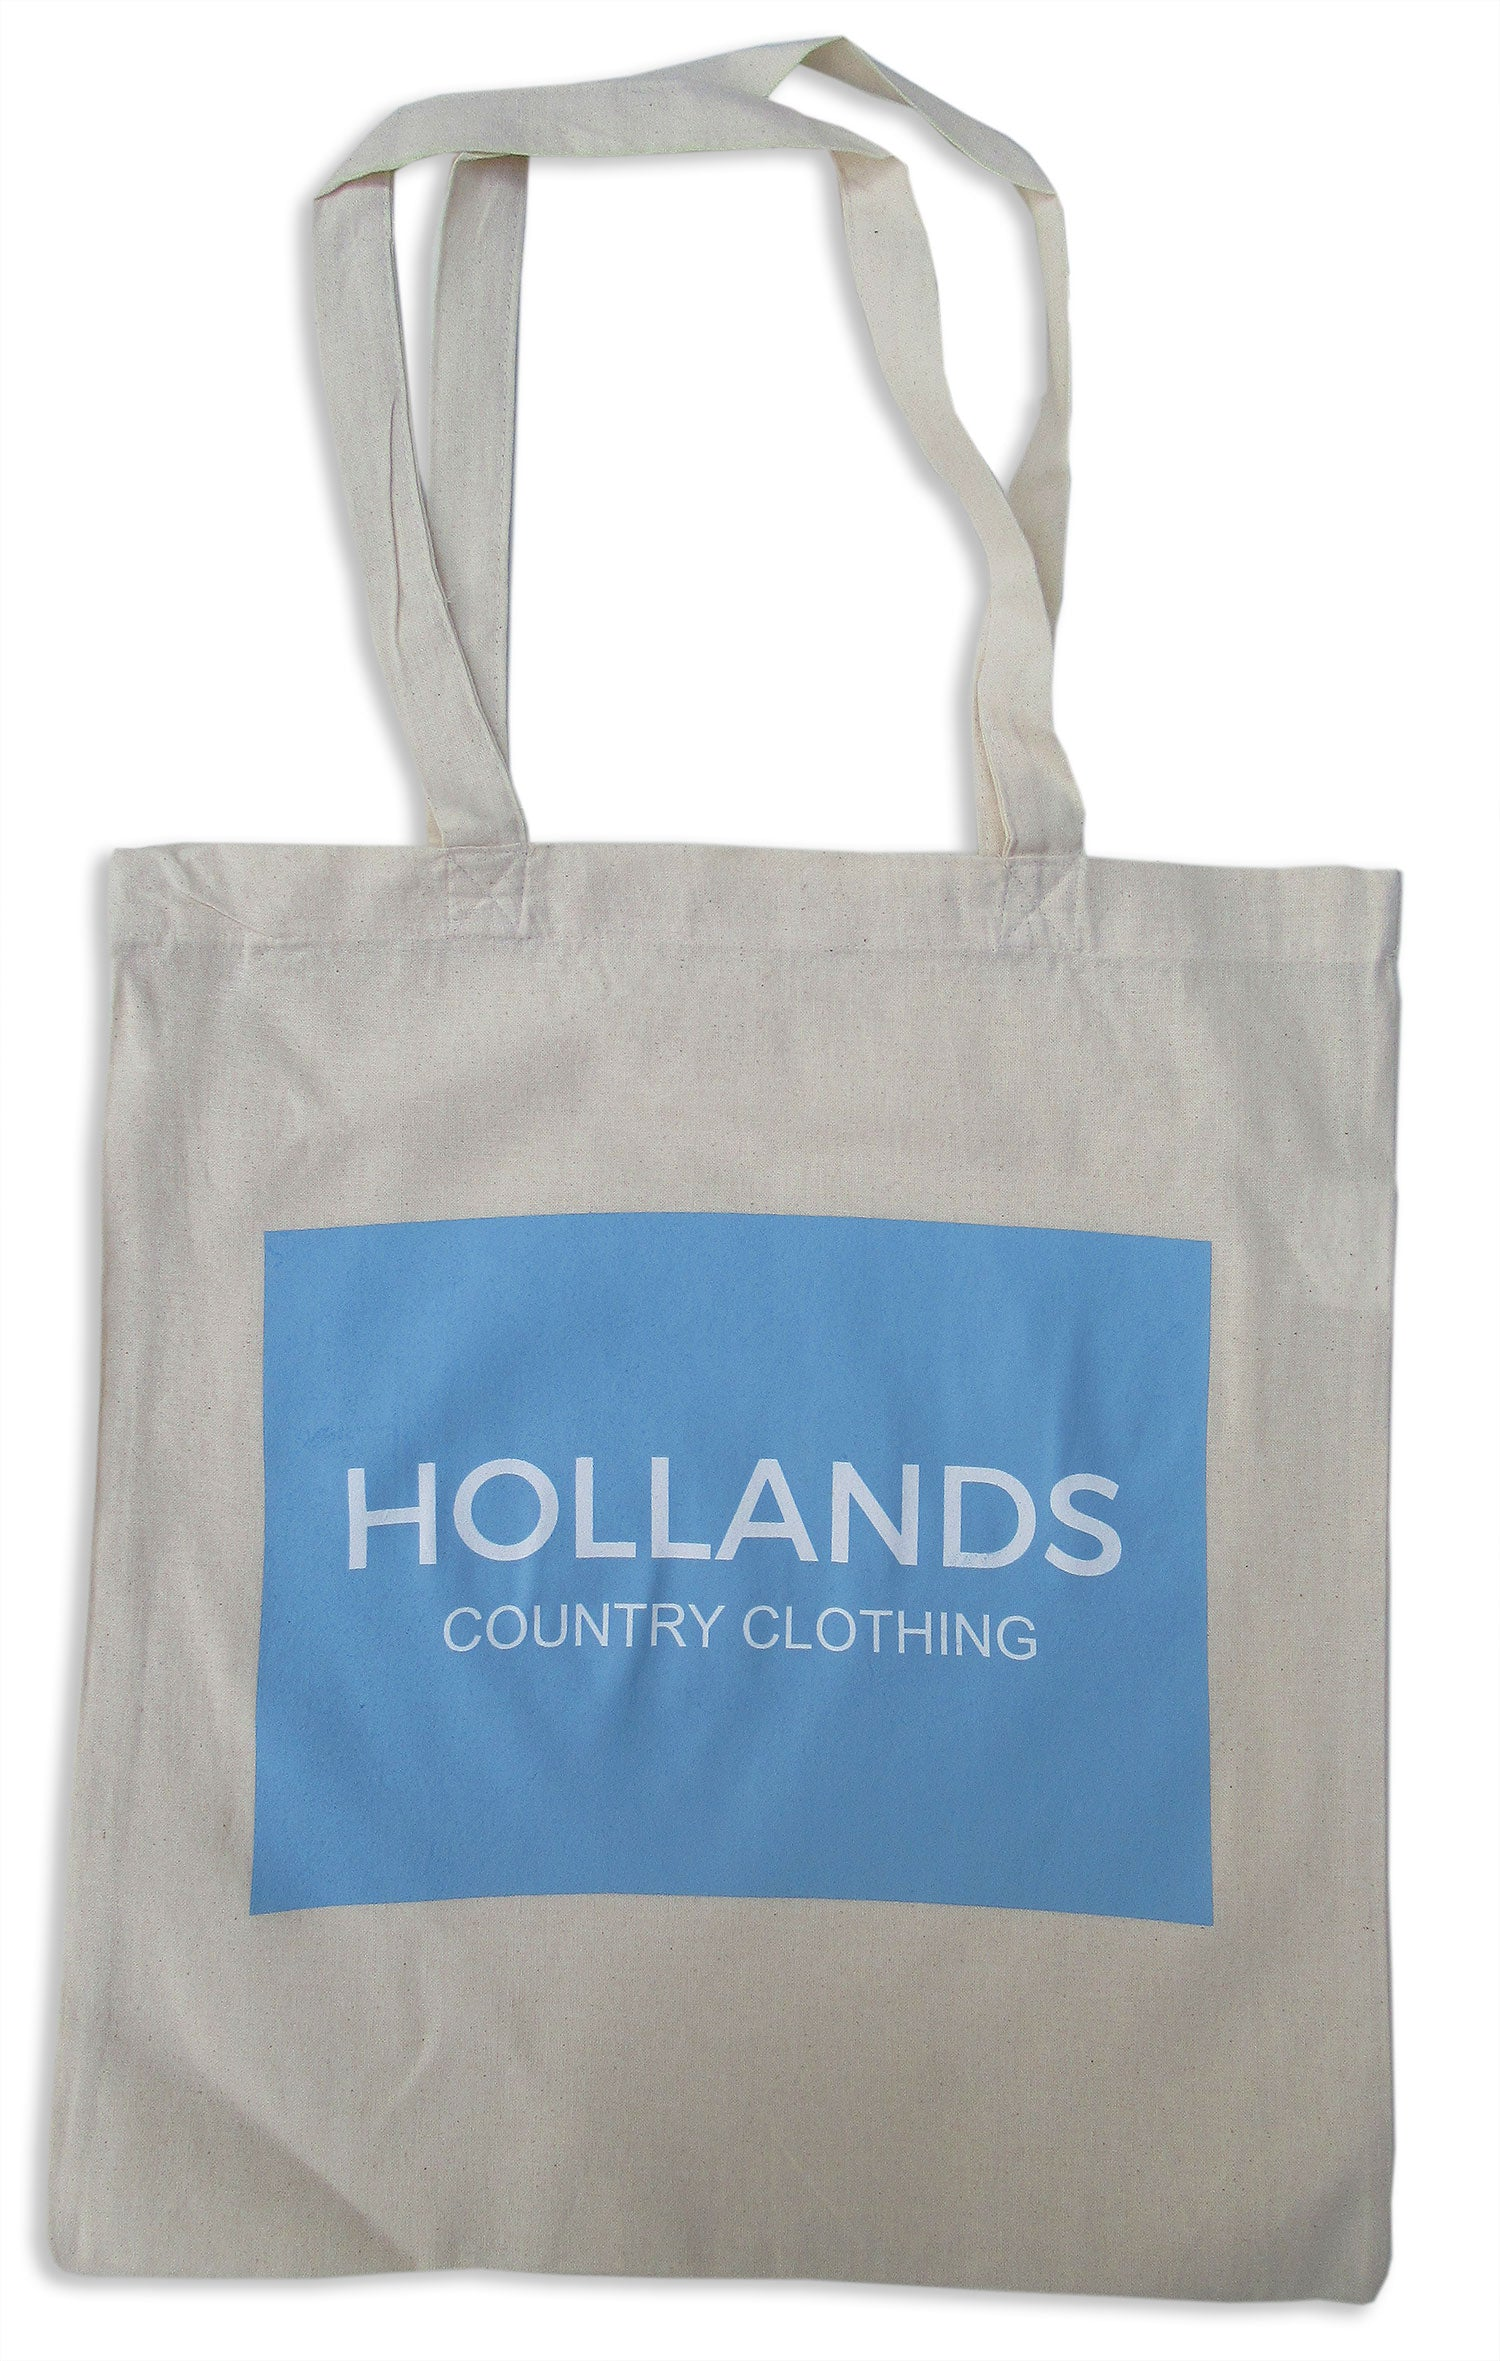 Holland's Country Clothing Tote Bag